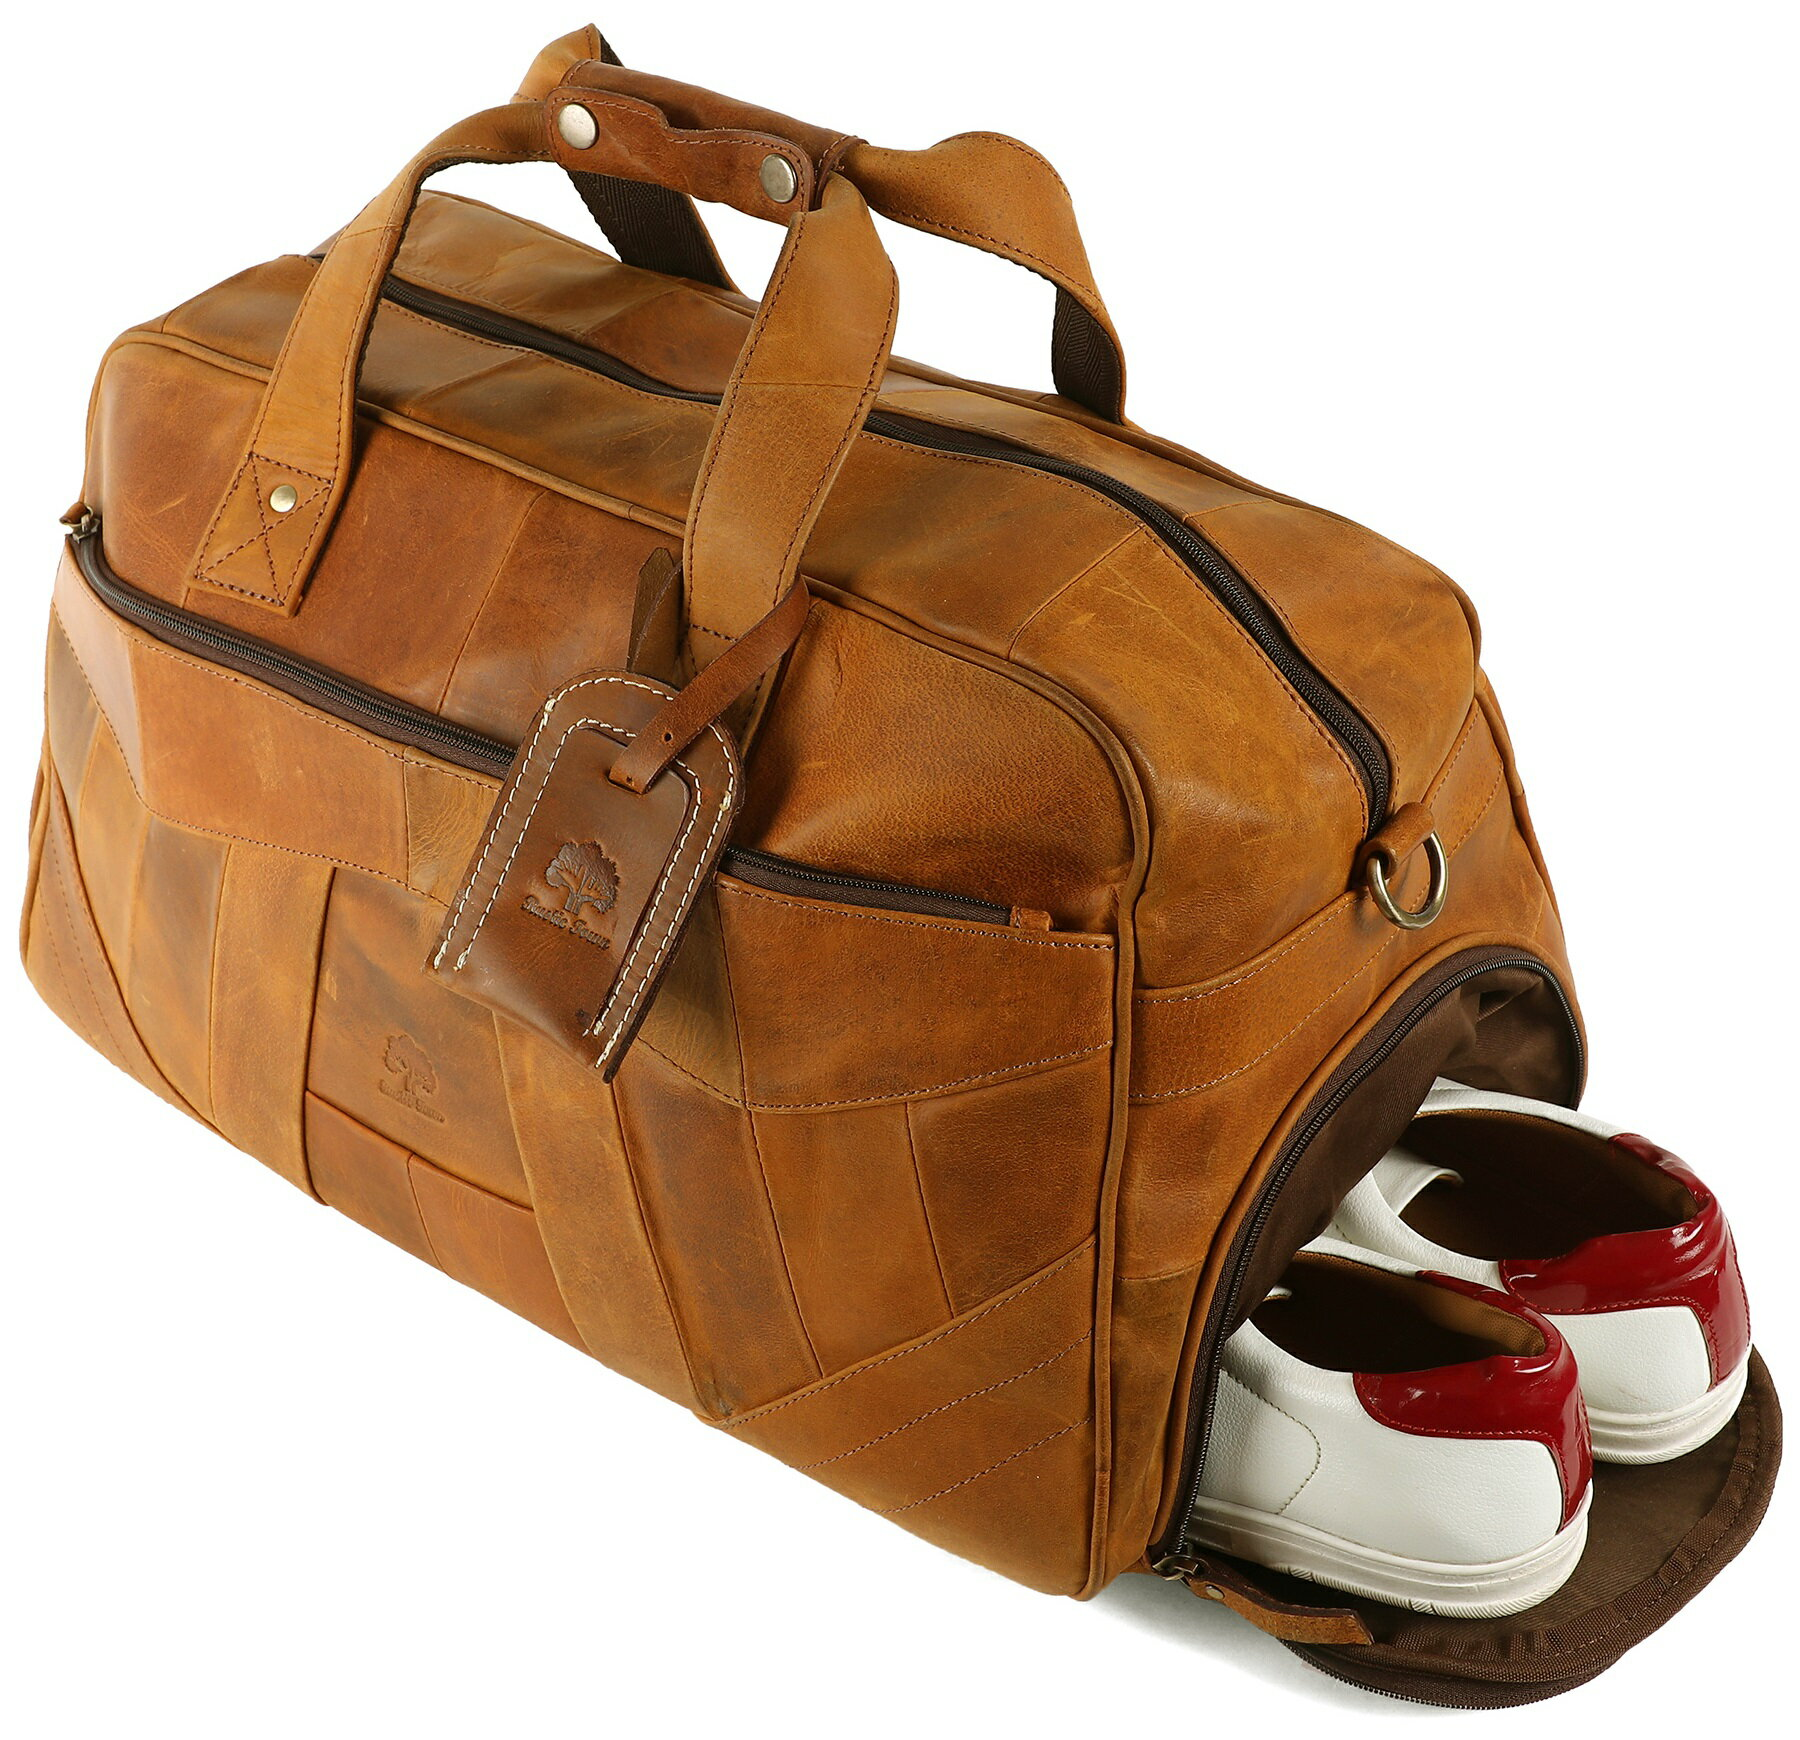 7a1fbf20d32e Rustic Town  Genuine Leather Handmade Duffel Bag For Men